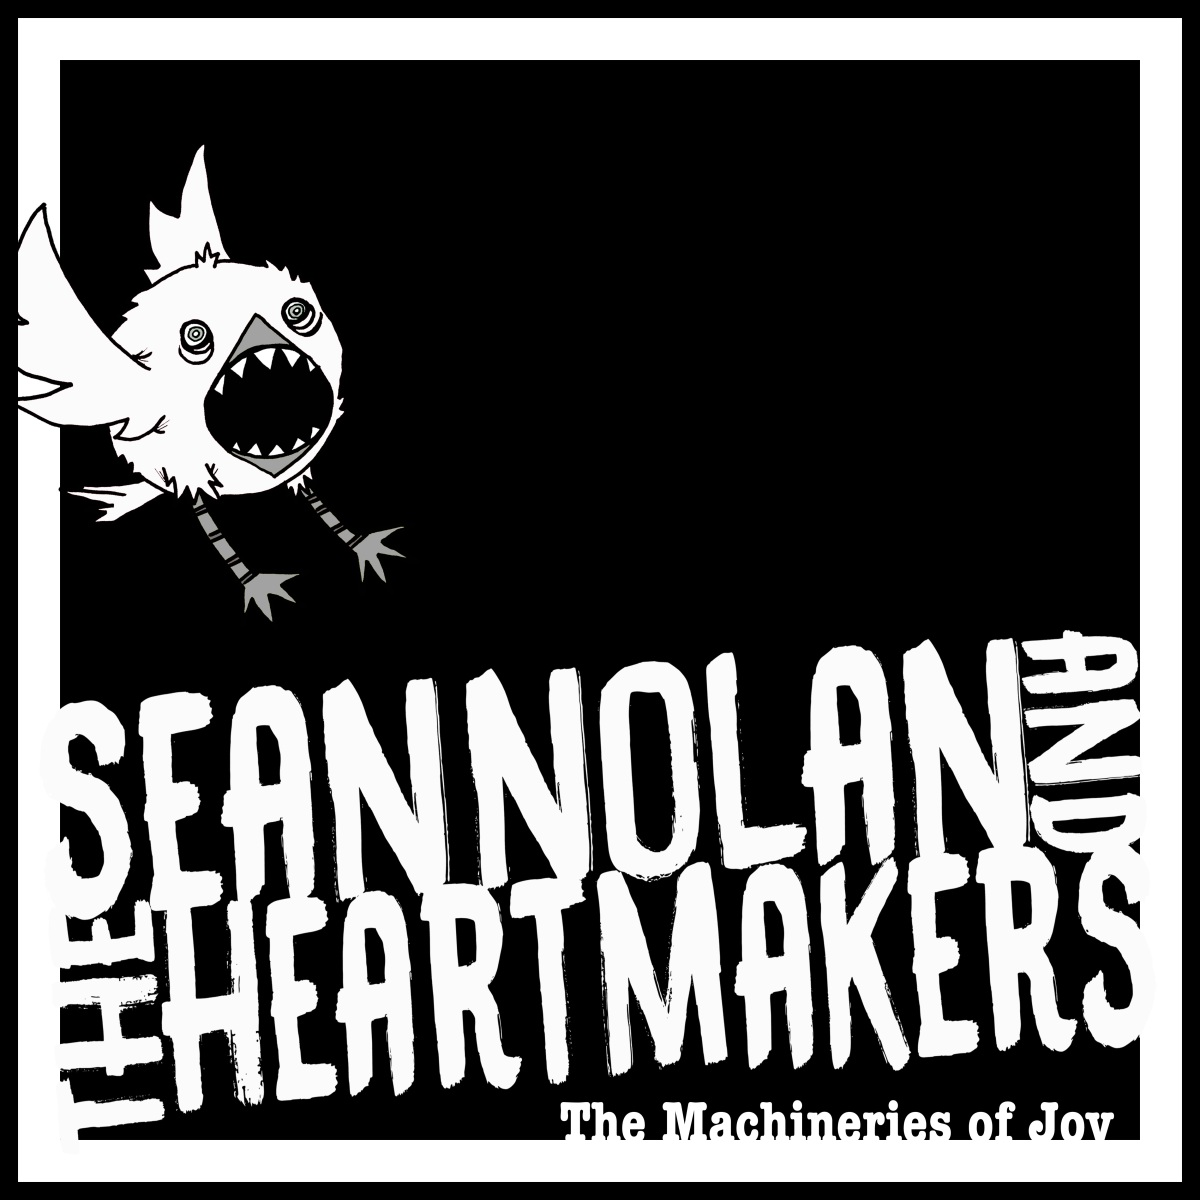 'Or, the Whale' by Sean Nolan and the Heartmakers Is Energetic Synth-Driven Pop Punk